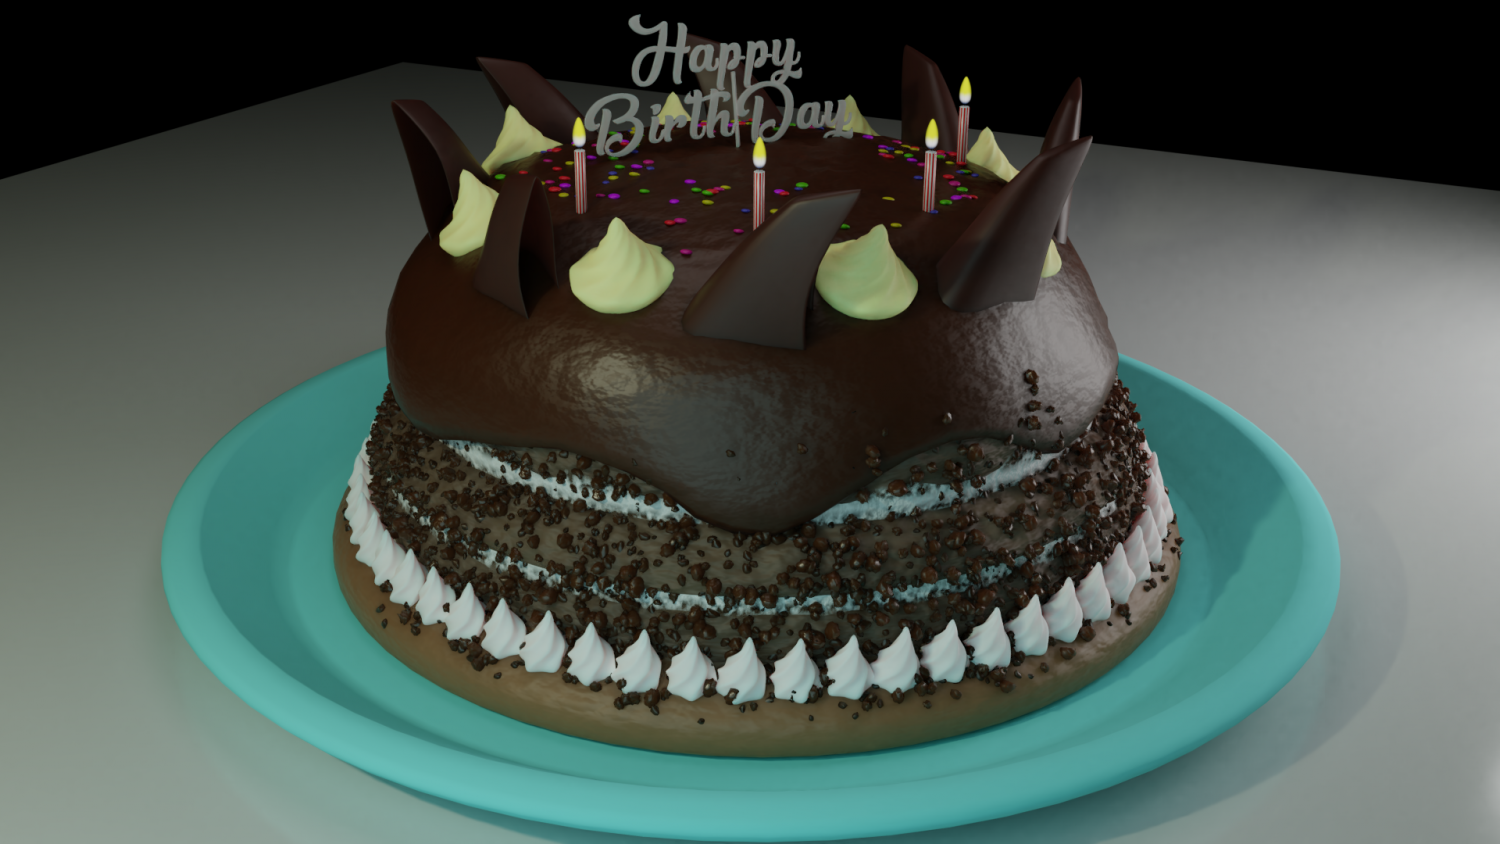 Birthday Cake Chocolate And Gems Free 3d Model In Miscellaneous 3dexport